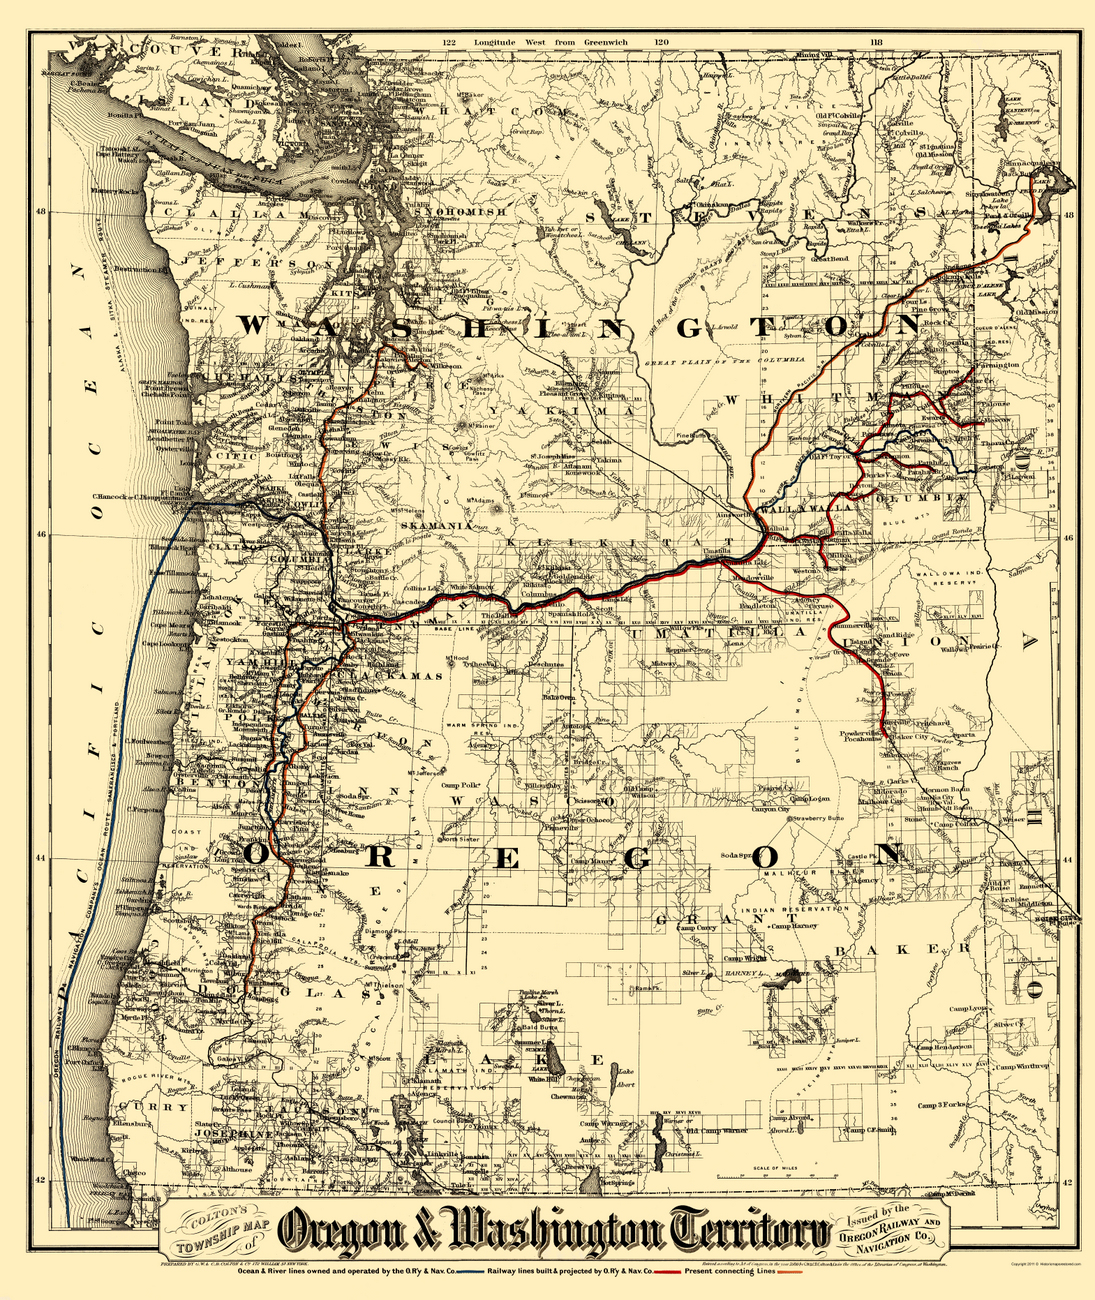 Old Railroad Maps  OREGON AND WASHINGTON TERRITORY BY